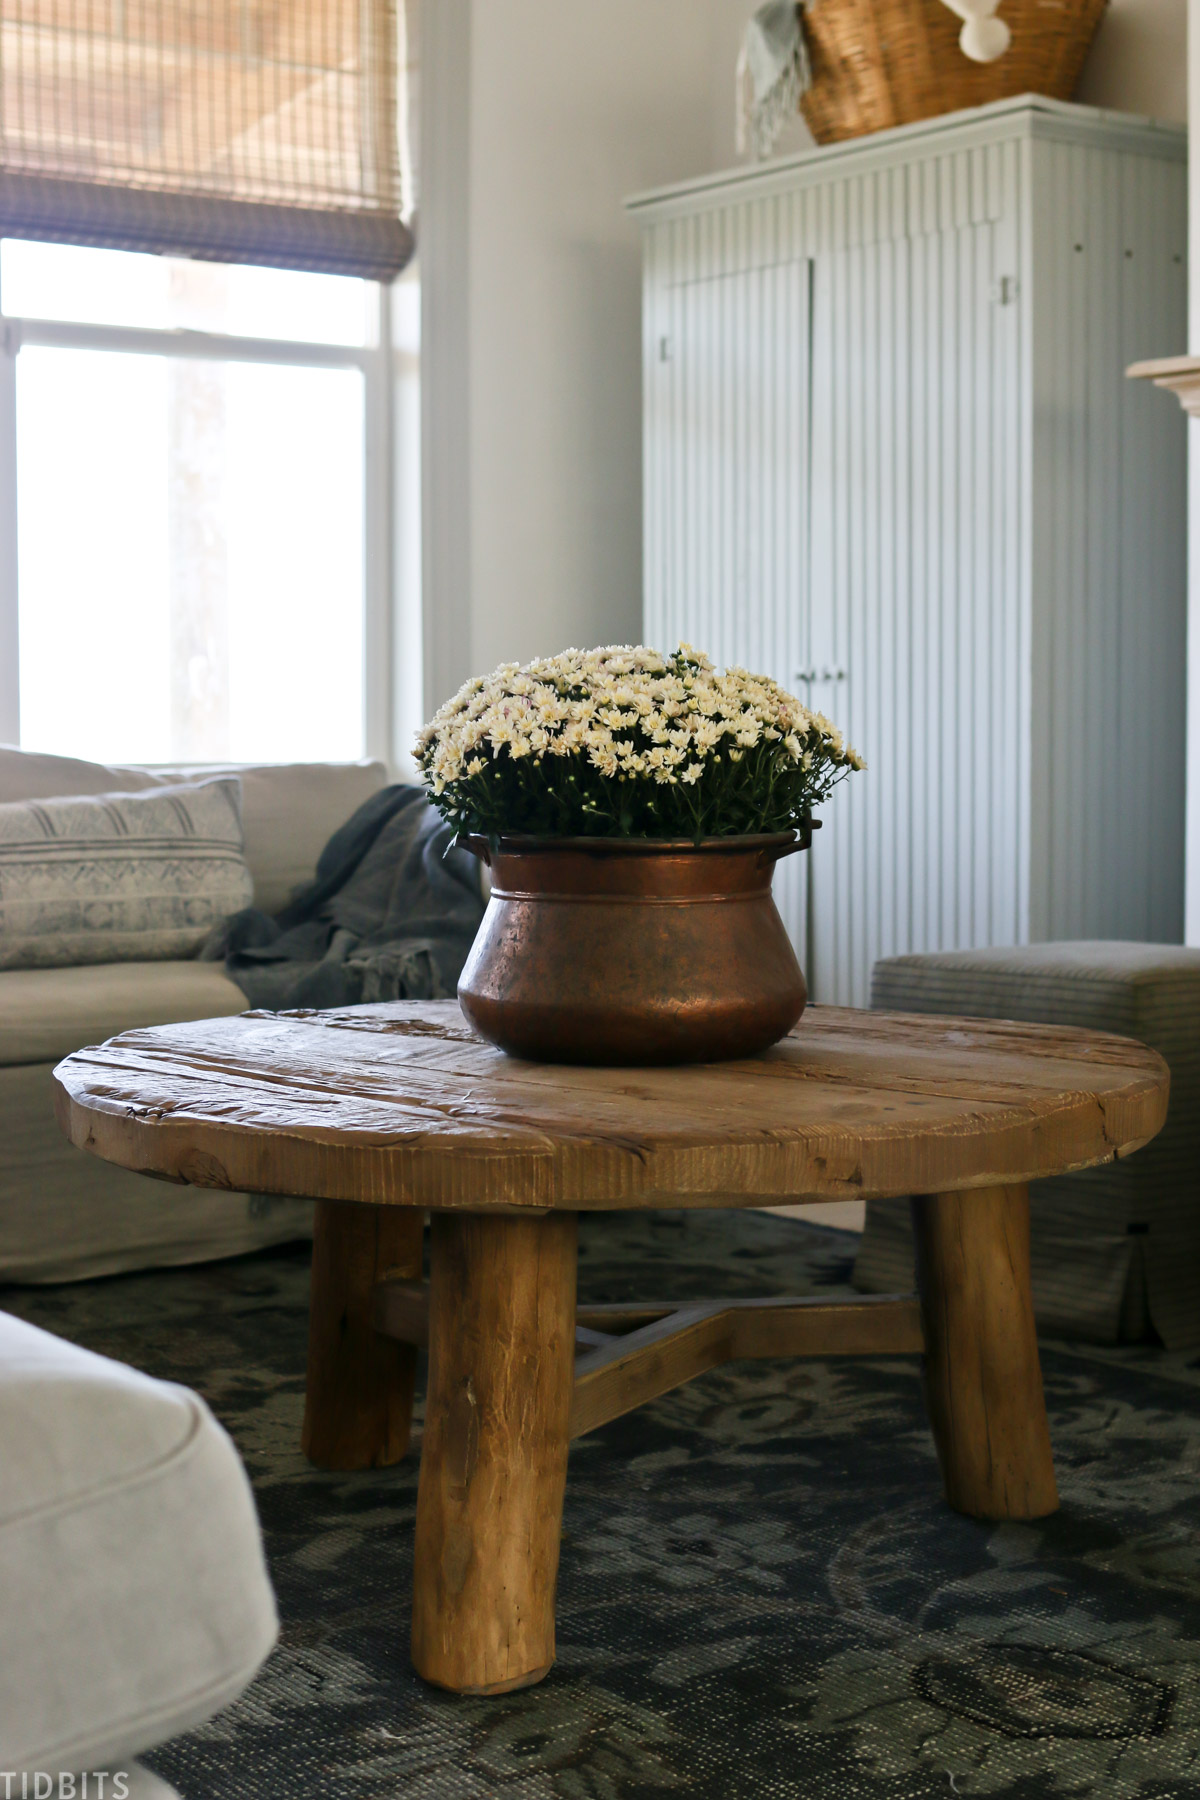 mums placed in copper pot being used as a centerpiece on a coffee table